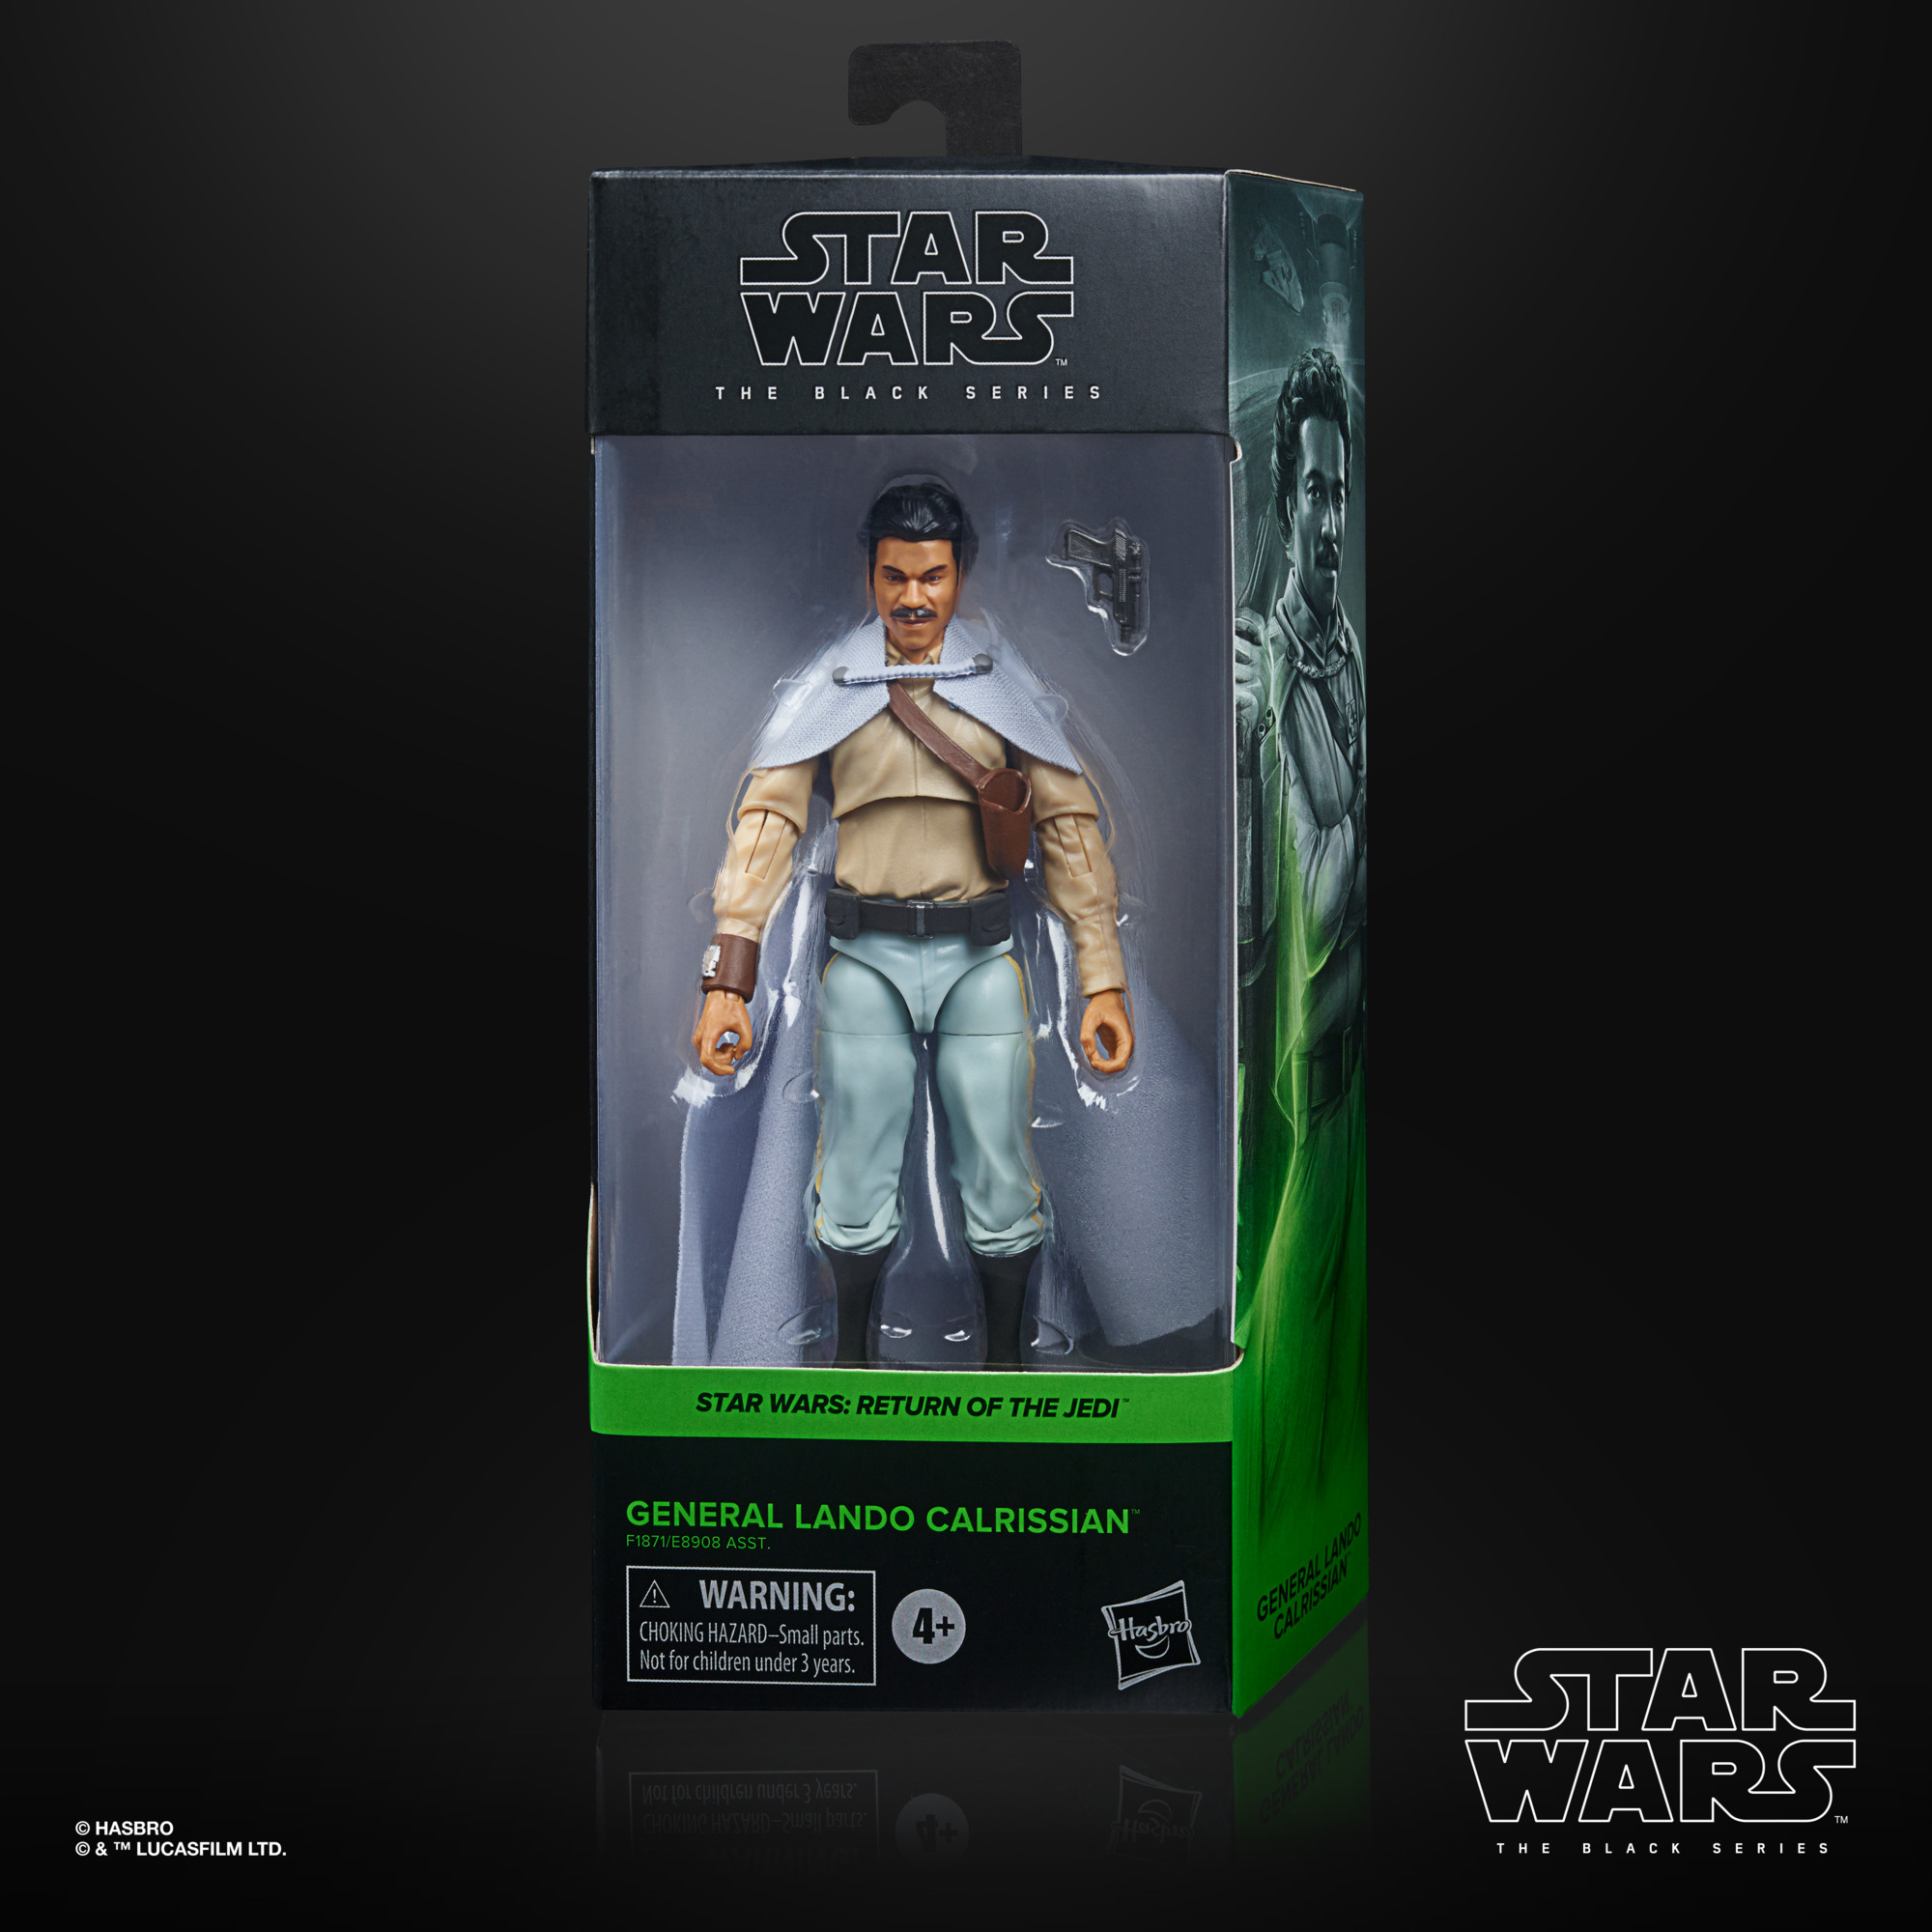 Star Wars The Black Series General Lando Calrissian Figure 15 cm F1871 5010993828036